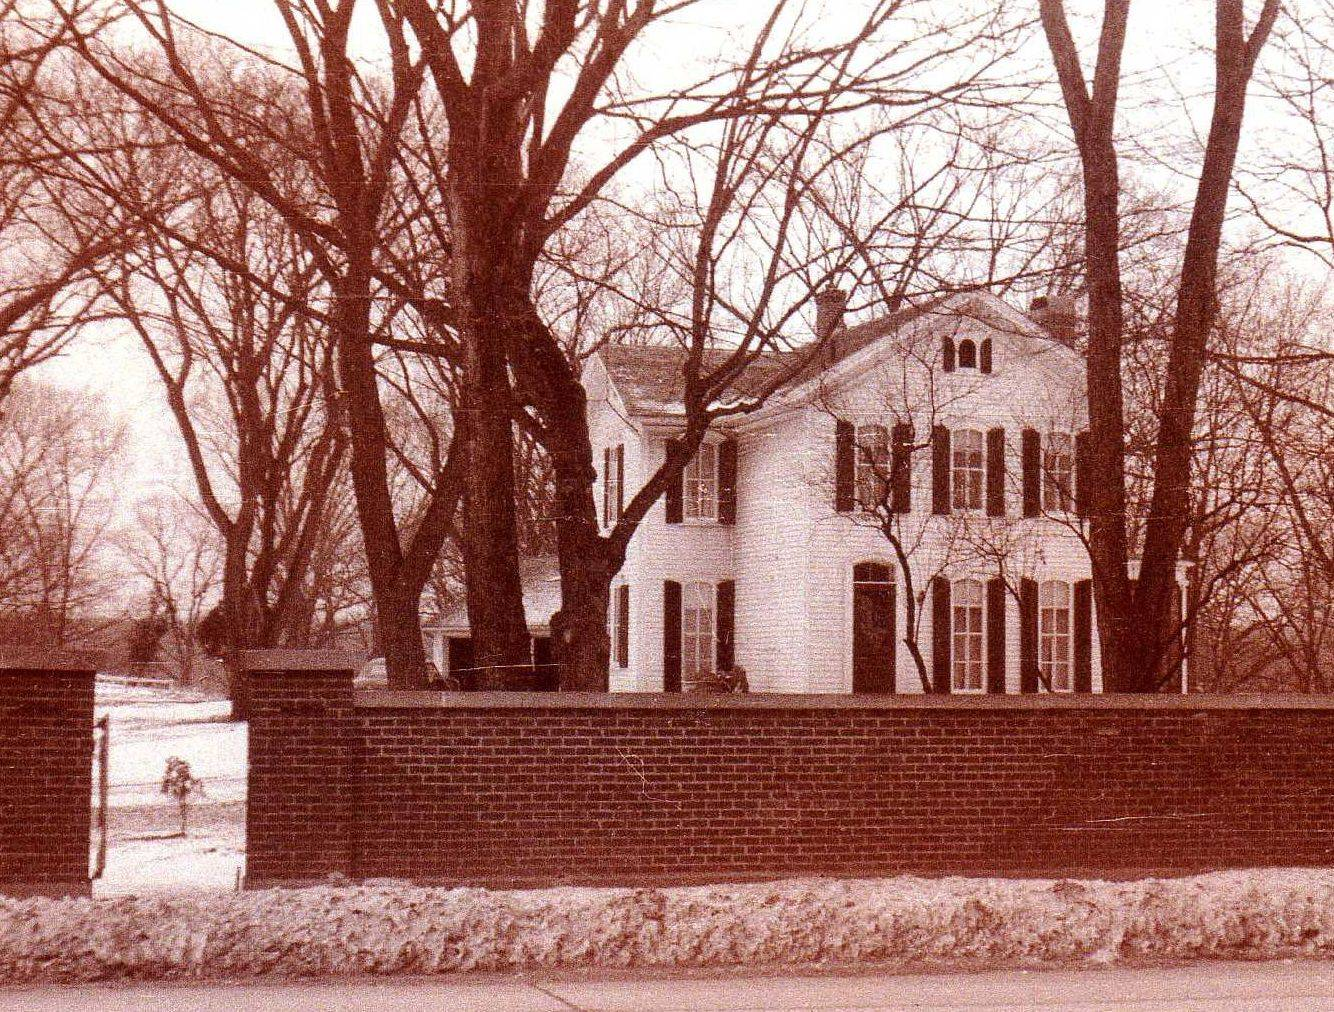 Craig and Donna Ostrye received several old photos of their home from a man in Oregan whose family members once lived there. This photos was taken in 1952.